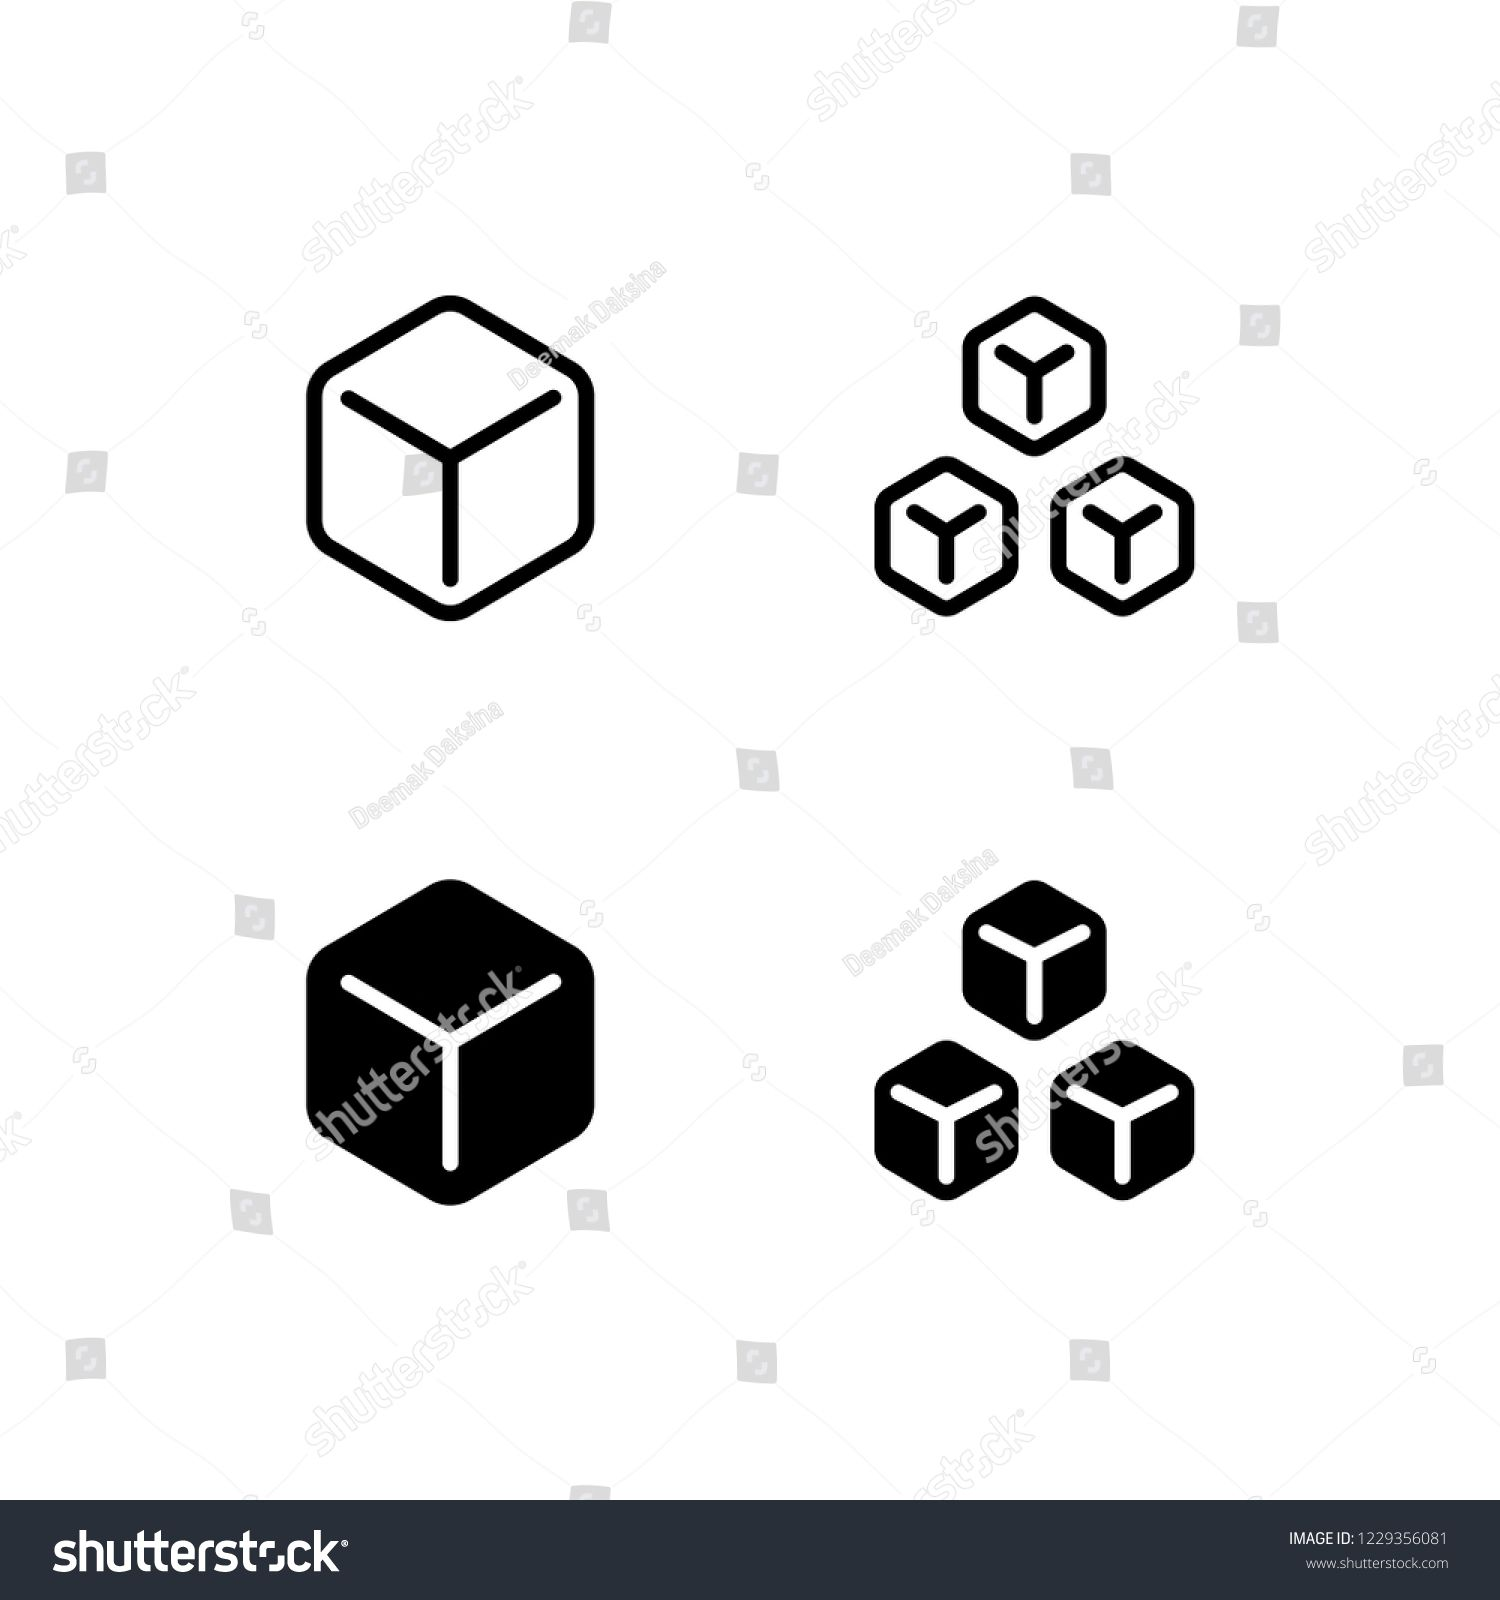 Ice Cubes Free Vector Icons Designed By Freepik Free Icons Doodle Art Journals Vector Free